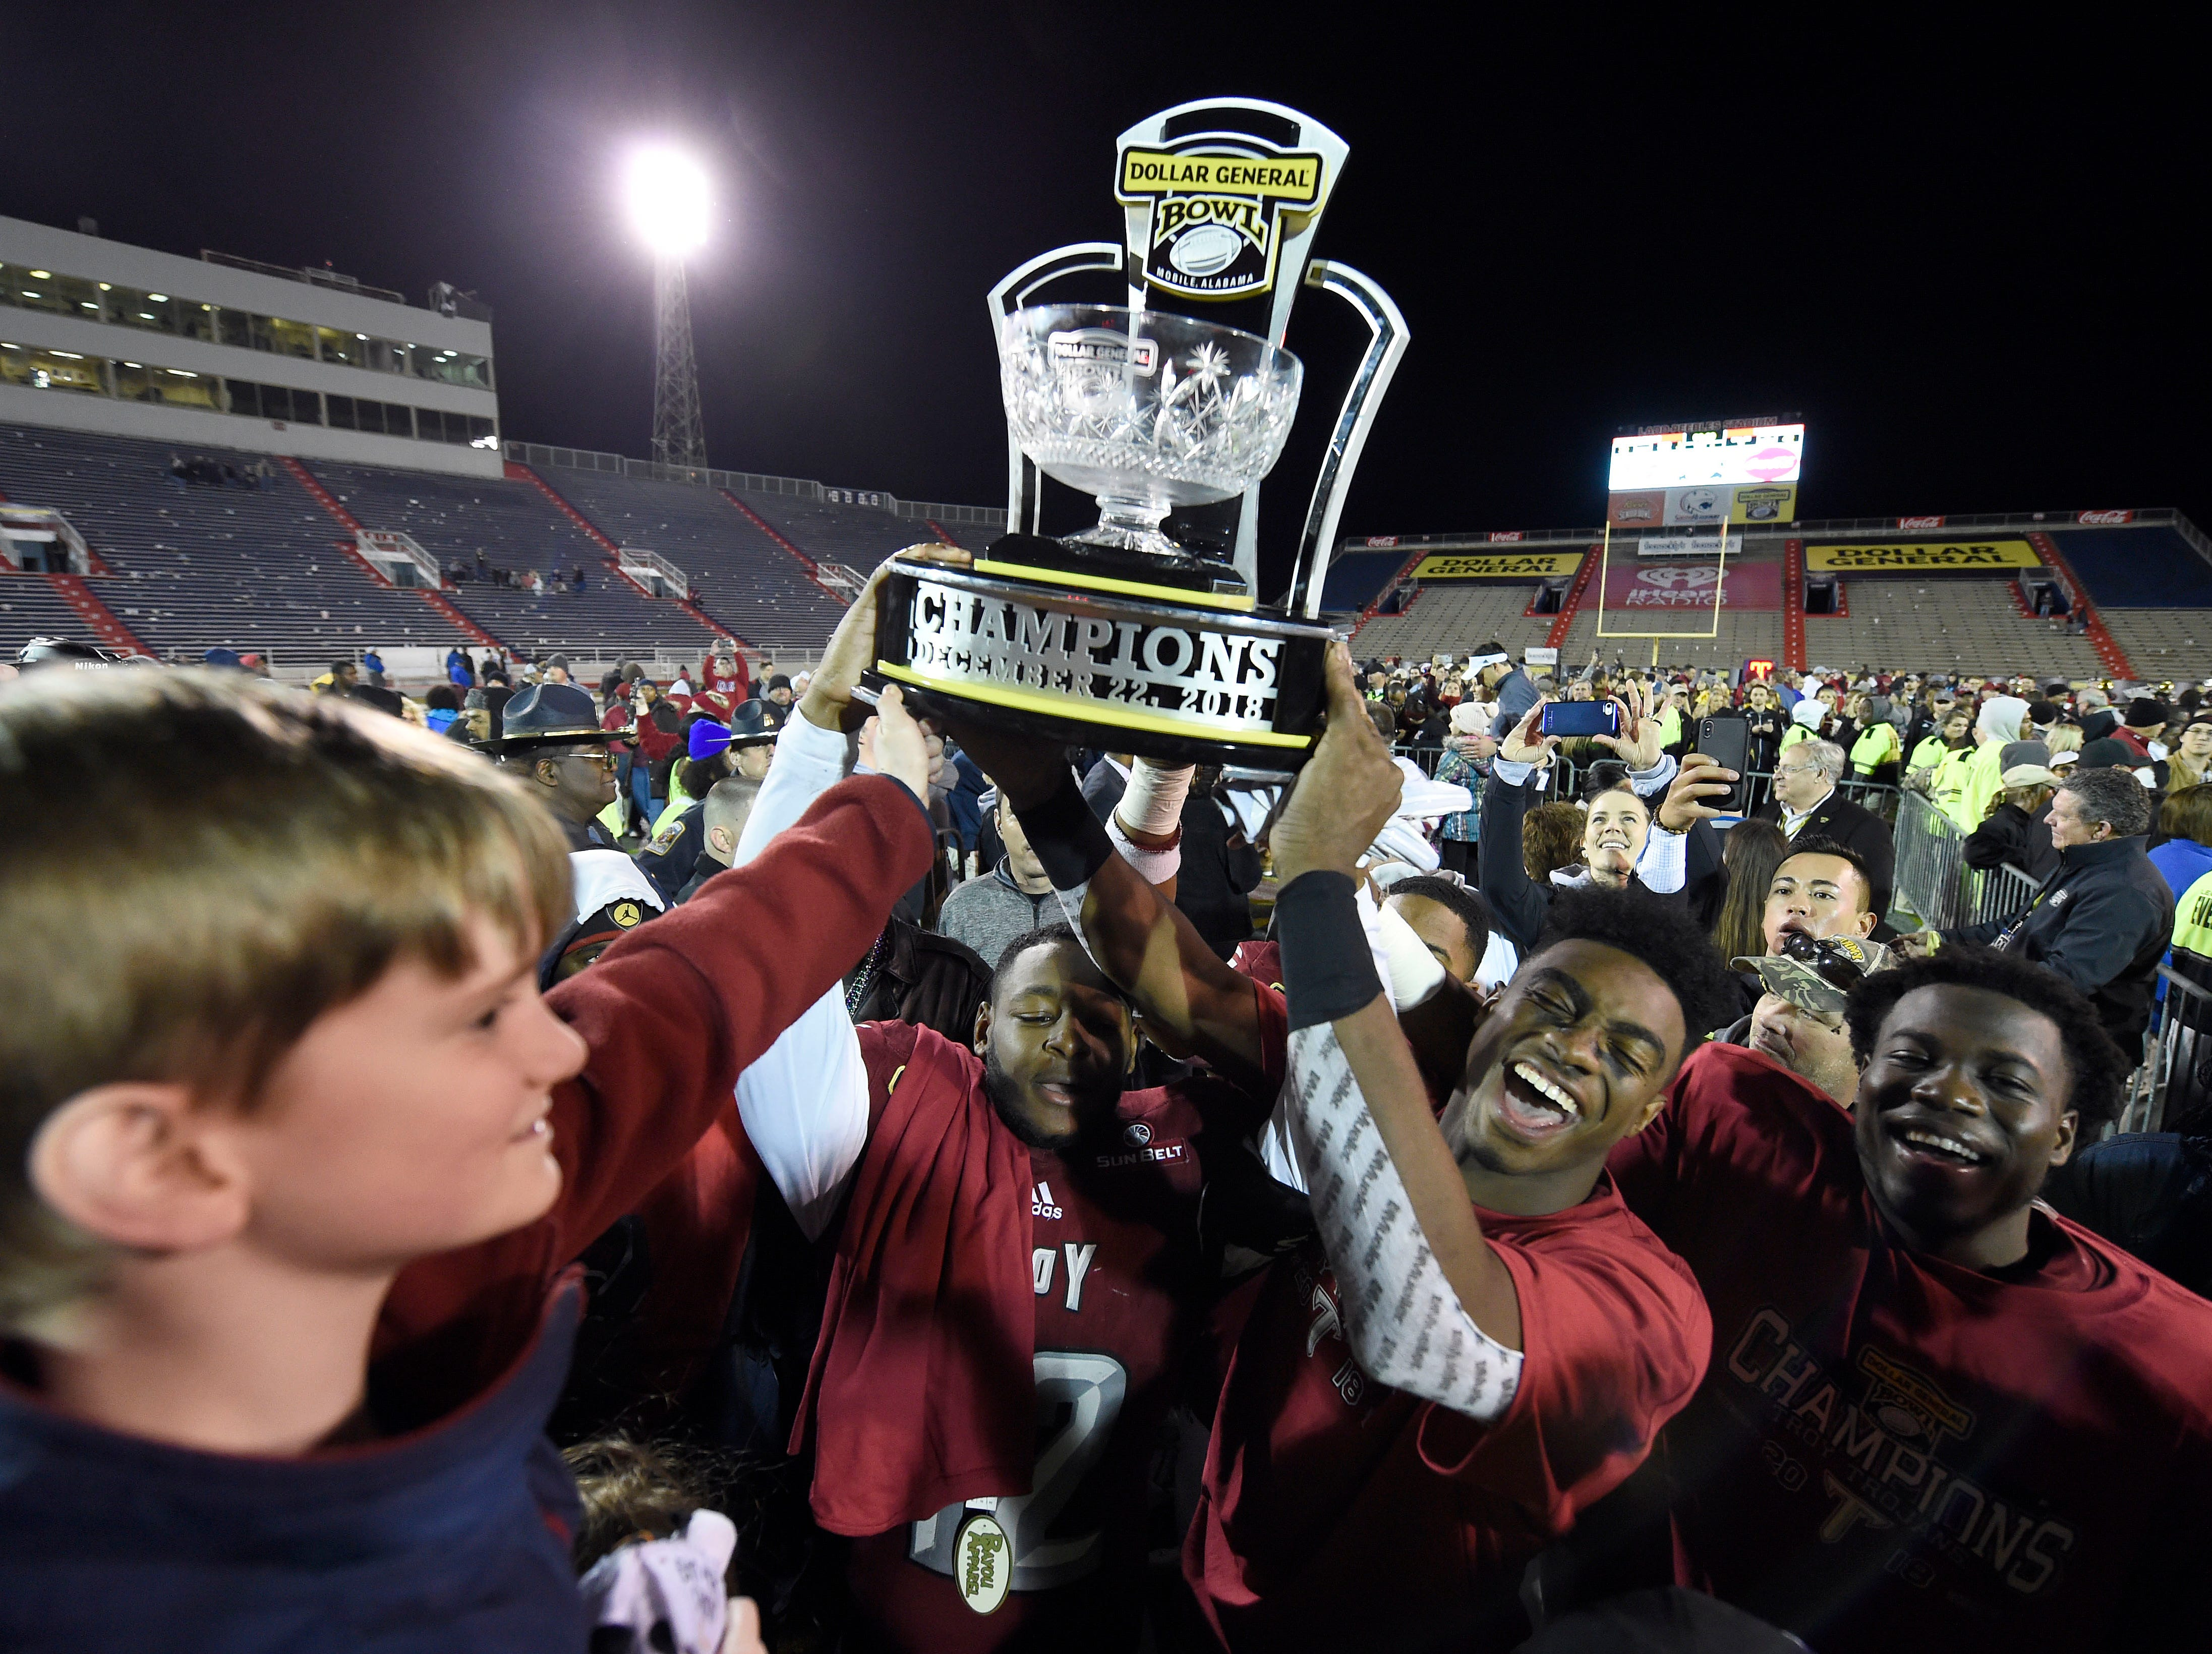 The Troy Trojans celebrate their victory over the Buffalo Bulls in the Dollar General Bowl.